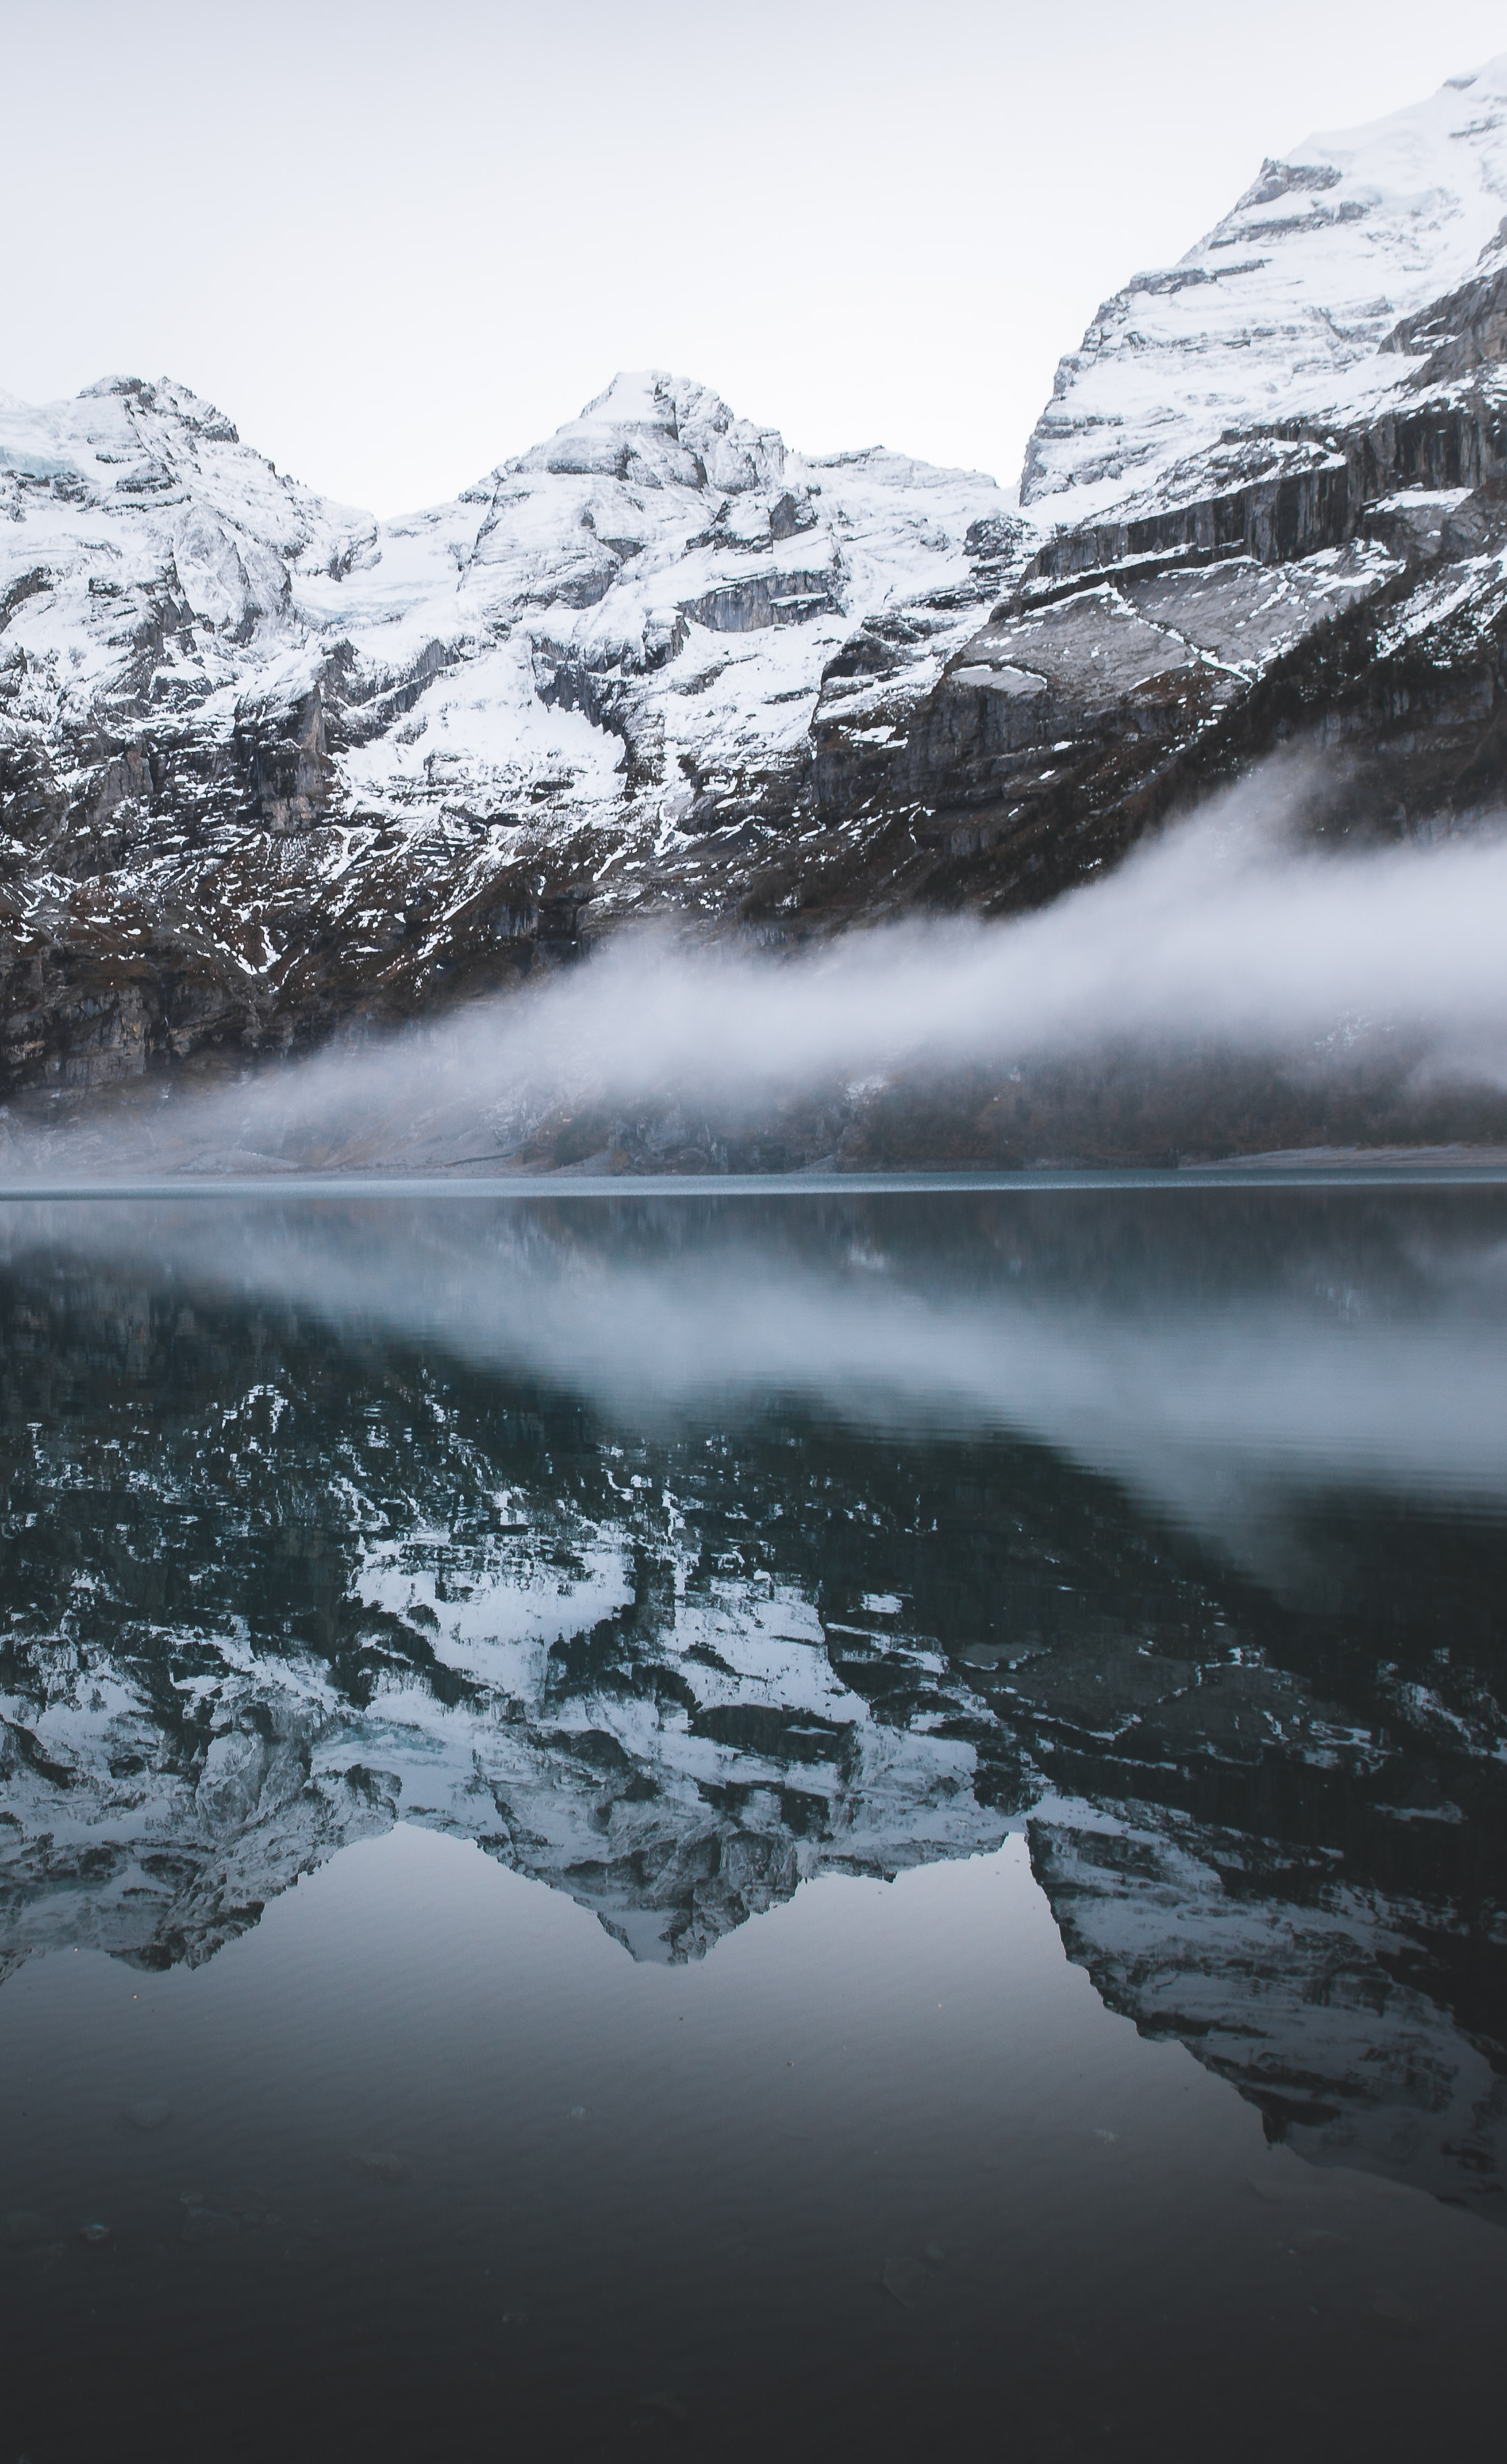 Reflections of snowy mountains reflect in calm foggy waters of Oeschinen Lake